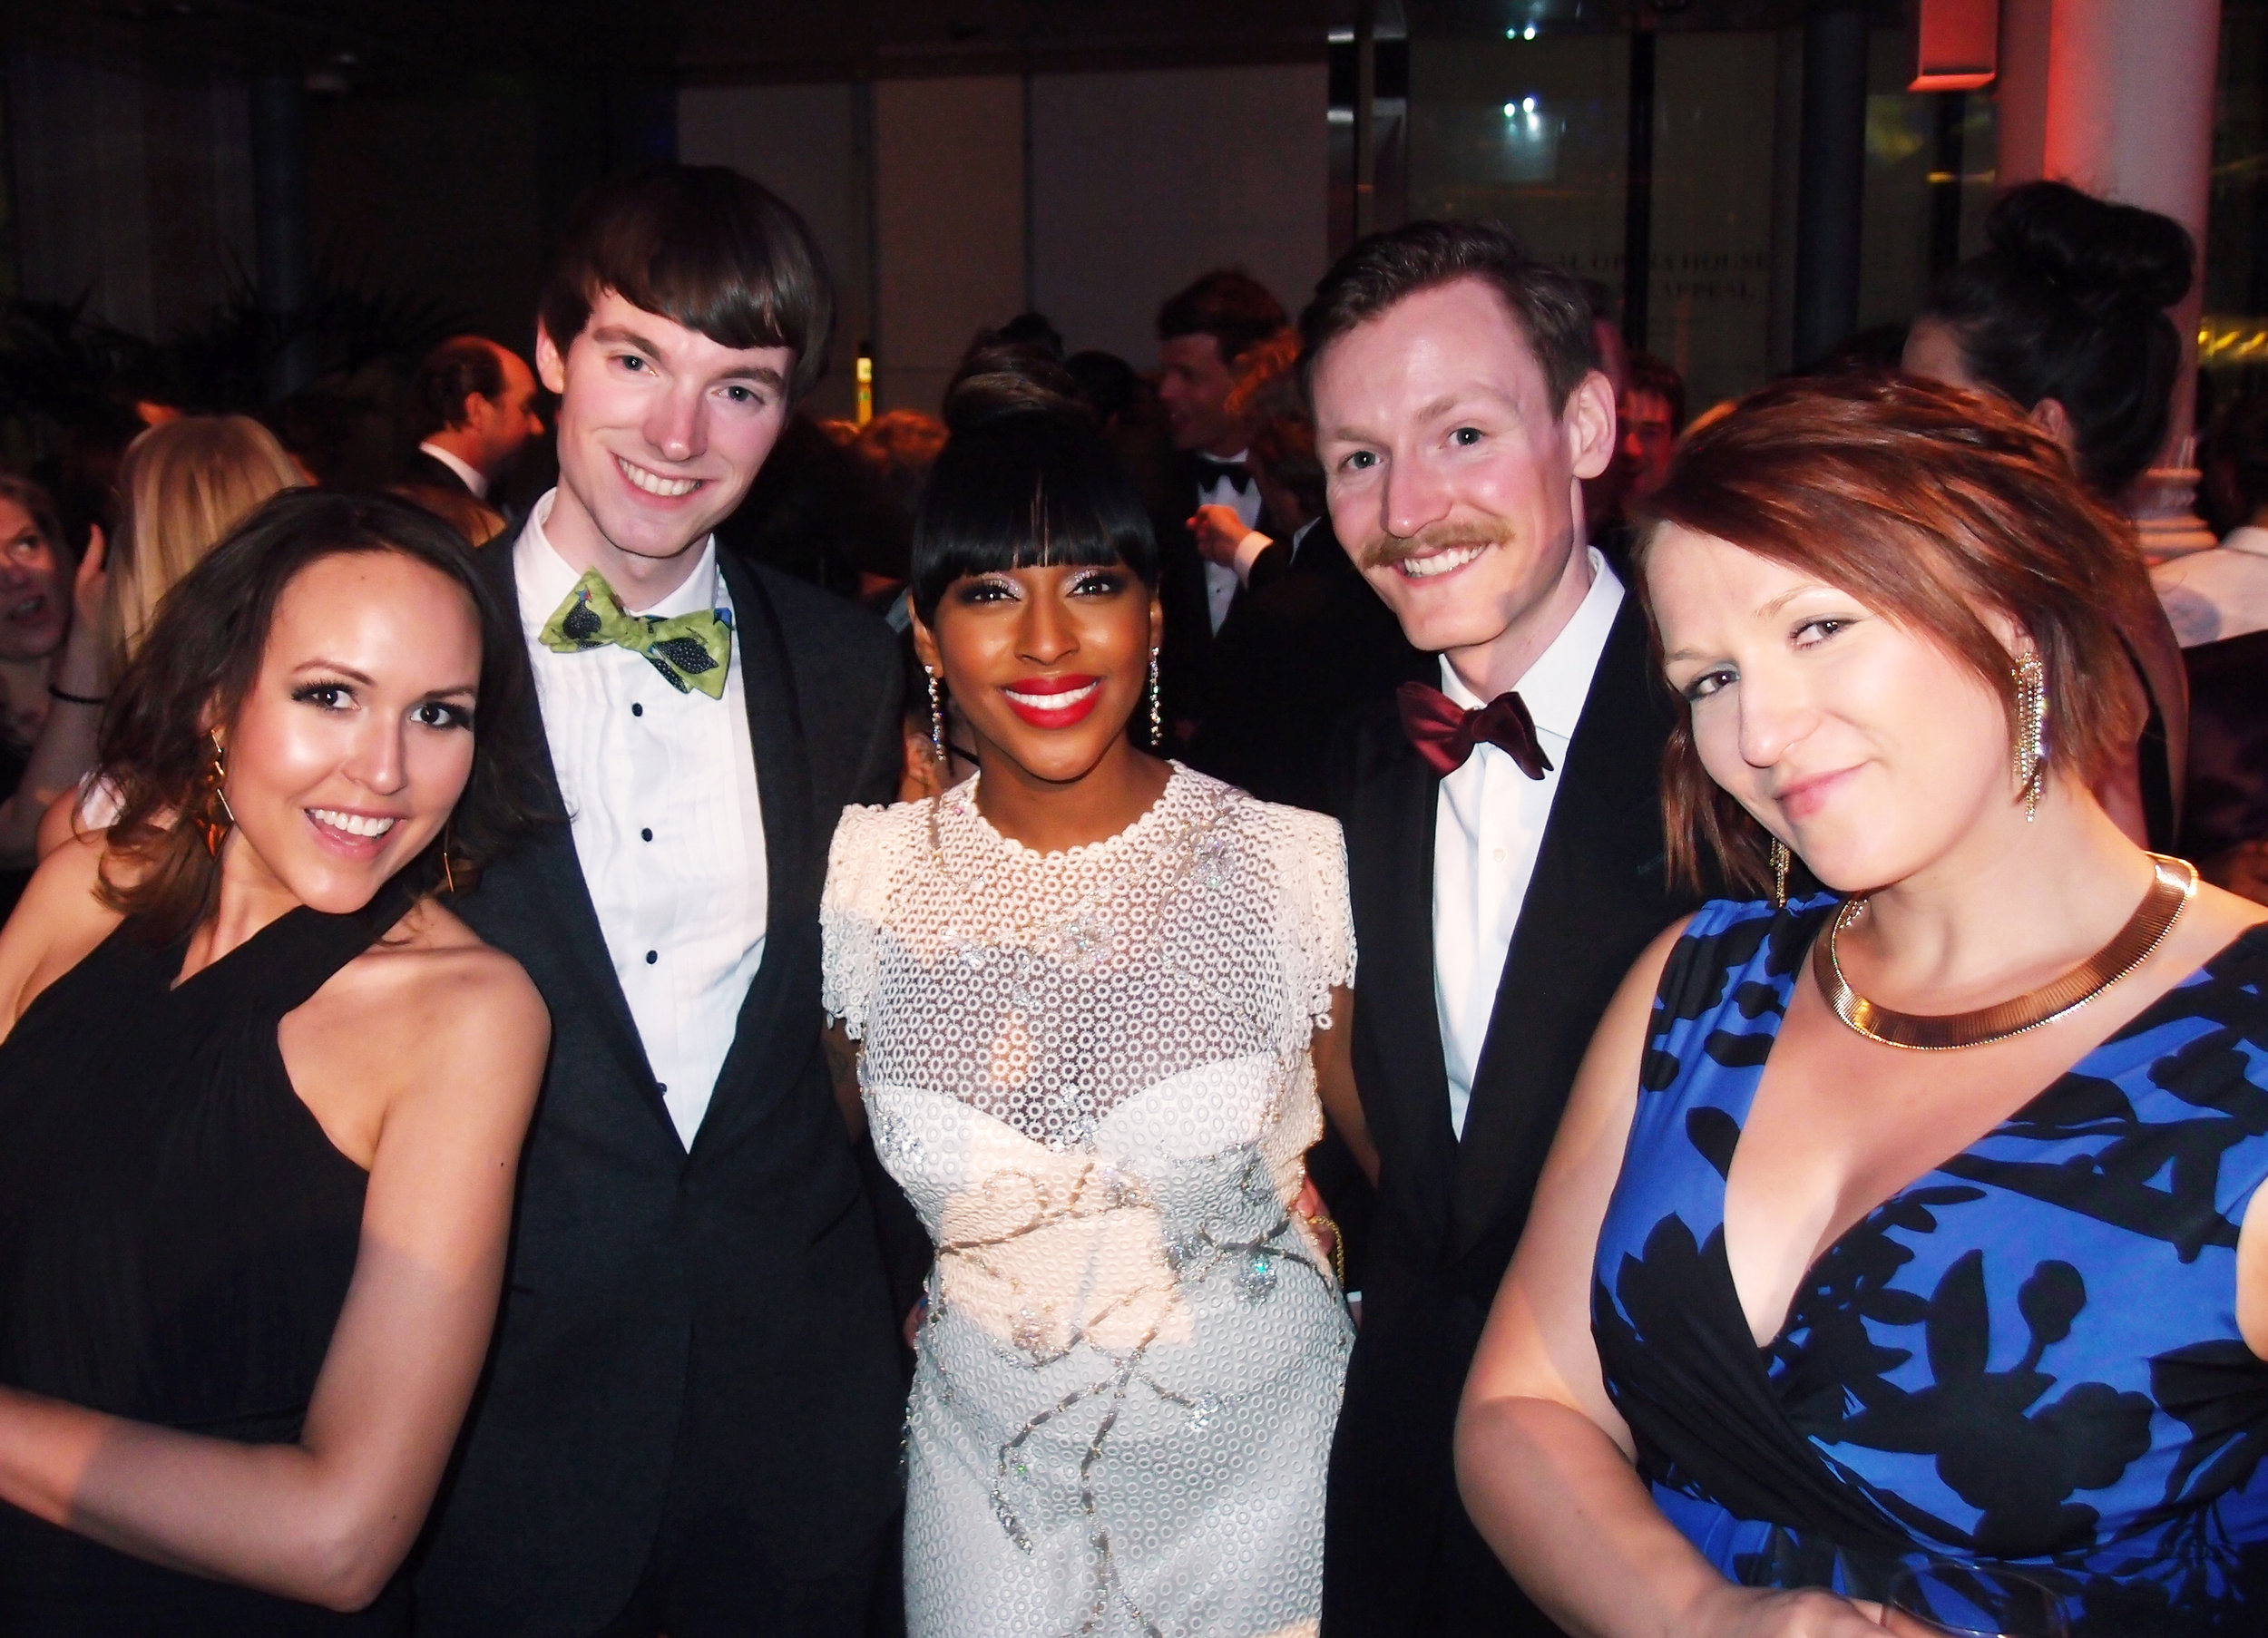 Richard Brownlie-Marshall & Alexandra Burke